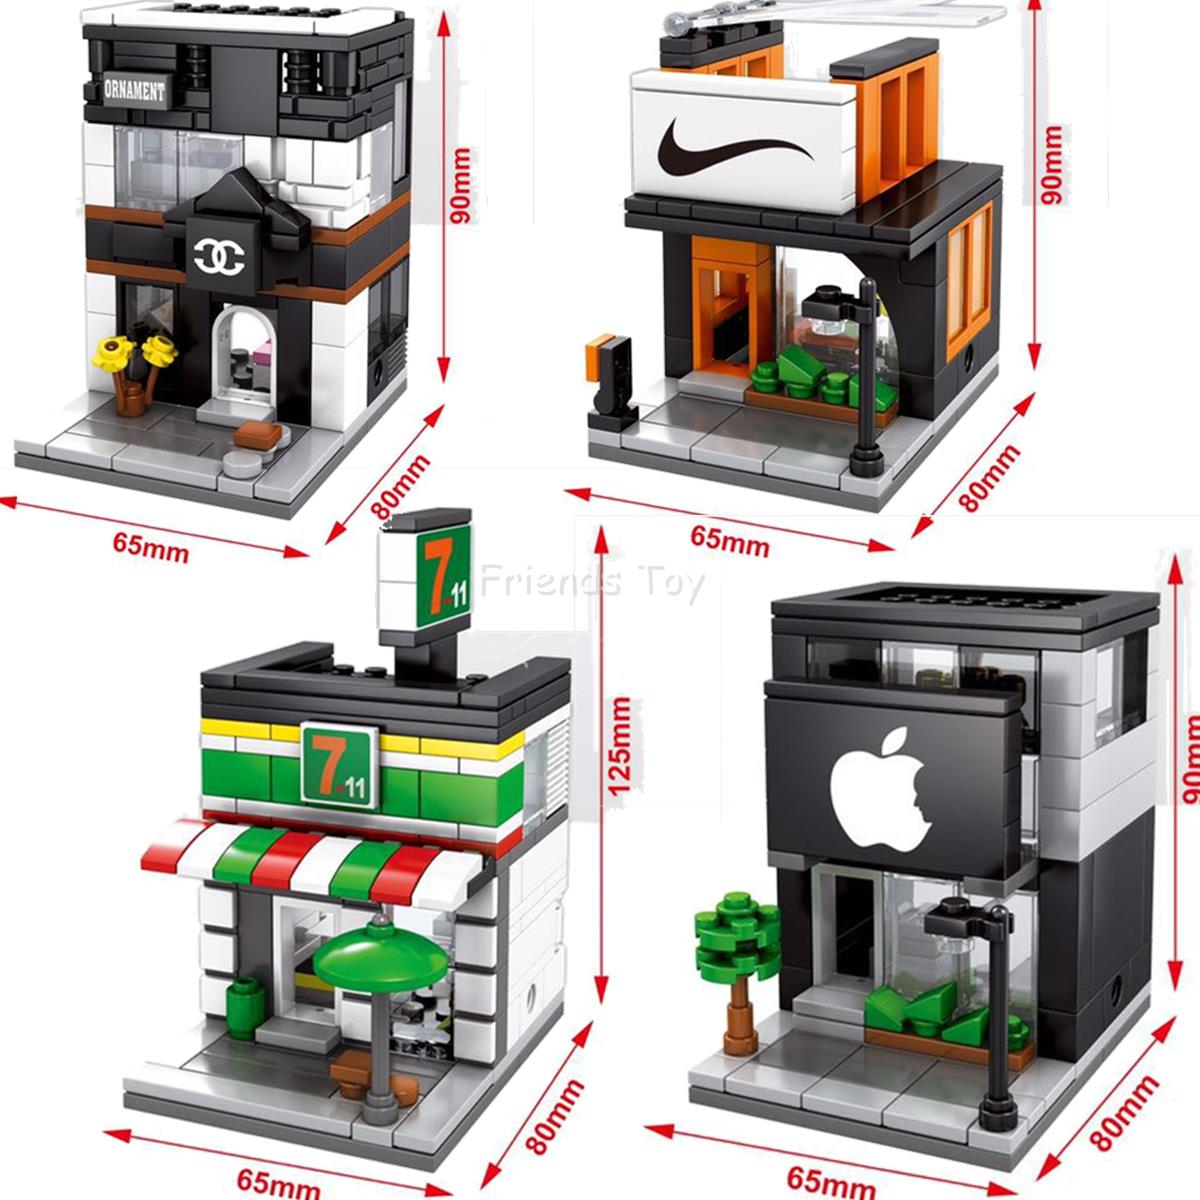 category items to build an apple store